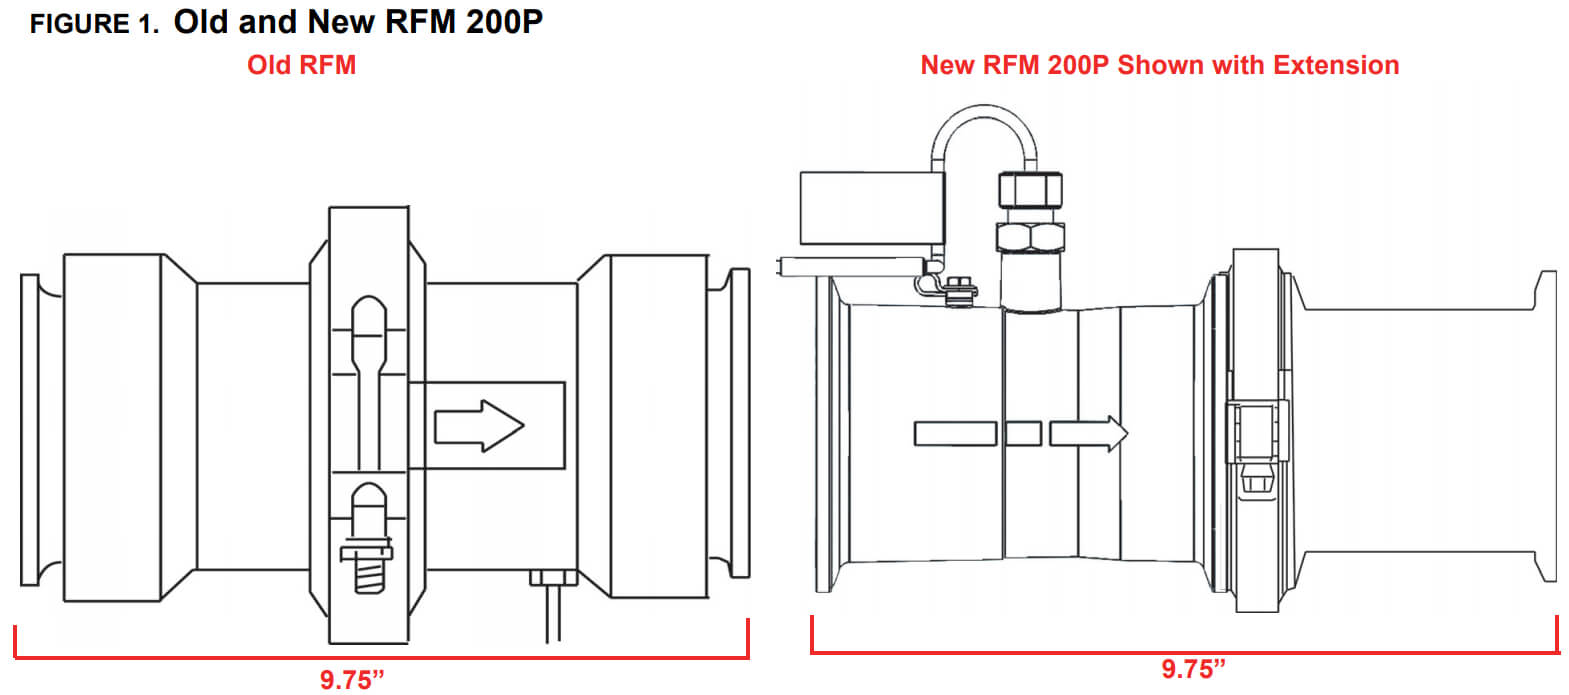 Old and New RFM 200P